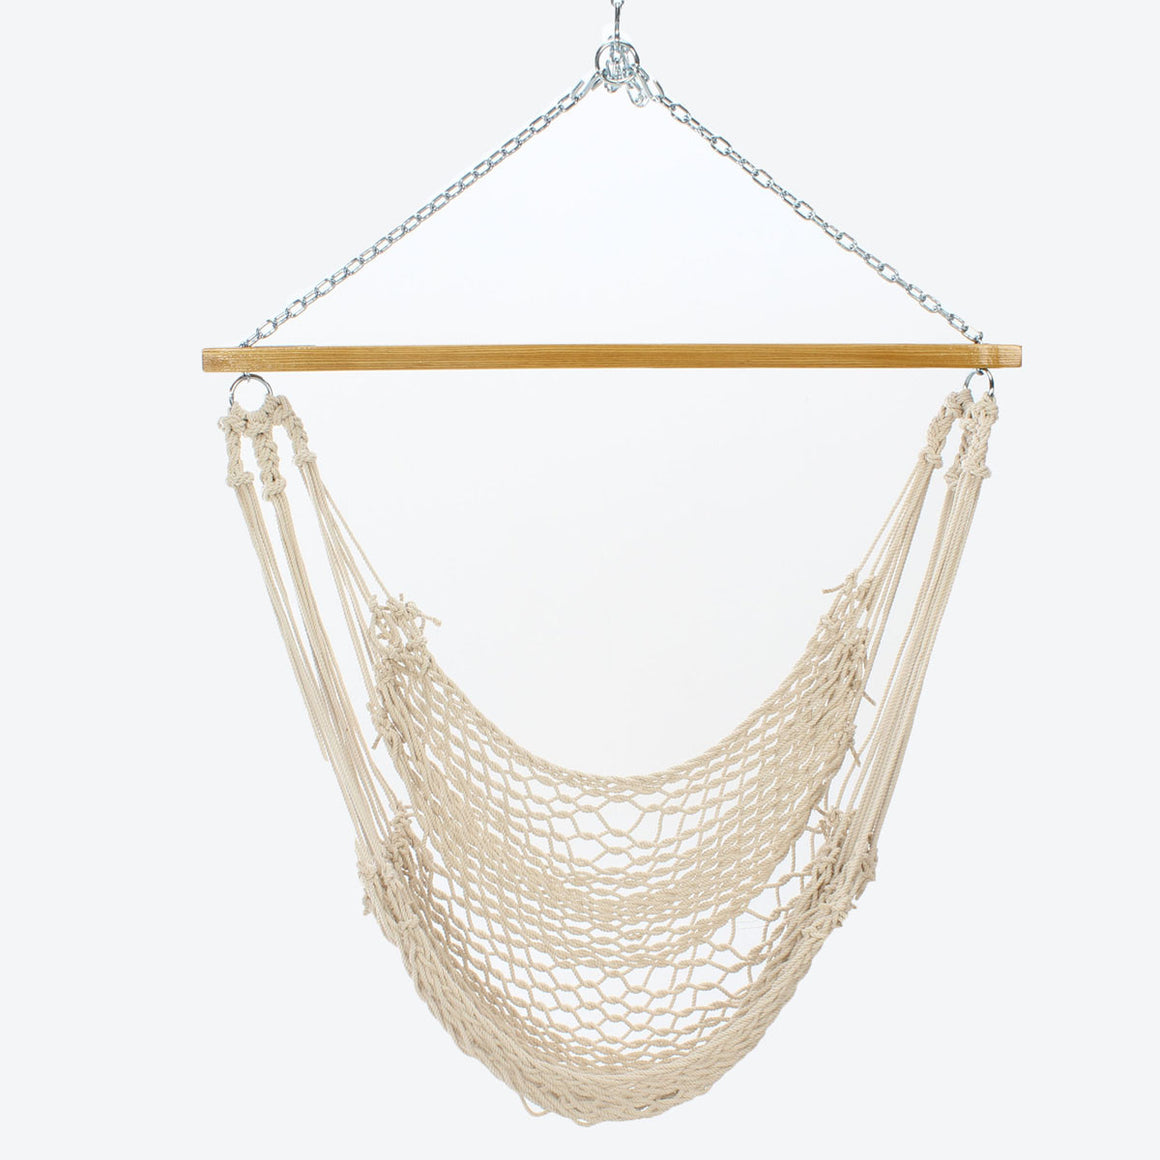 hanging cotton rope products hammock home decor nirvana life